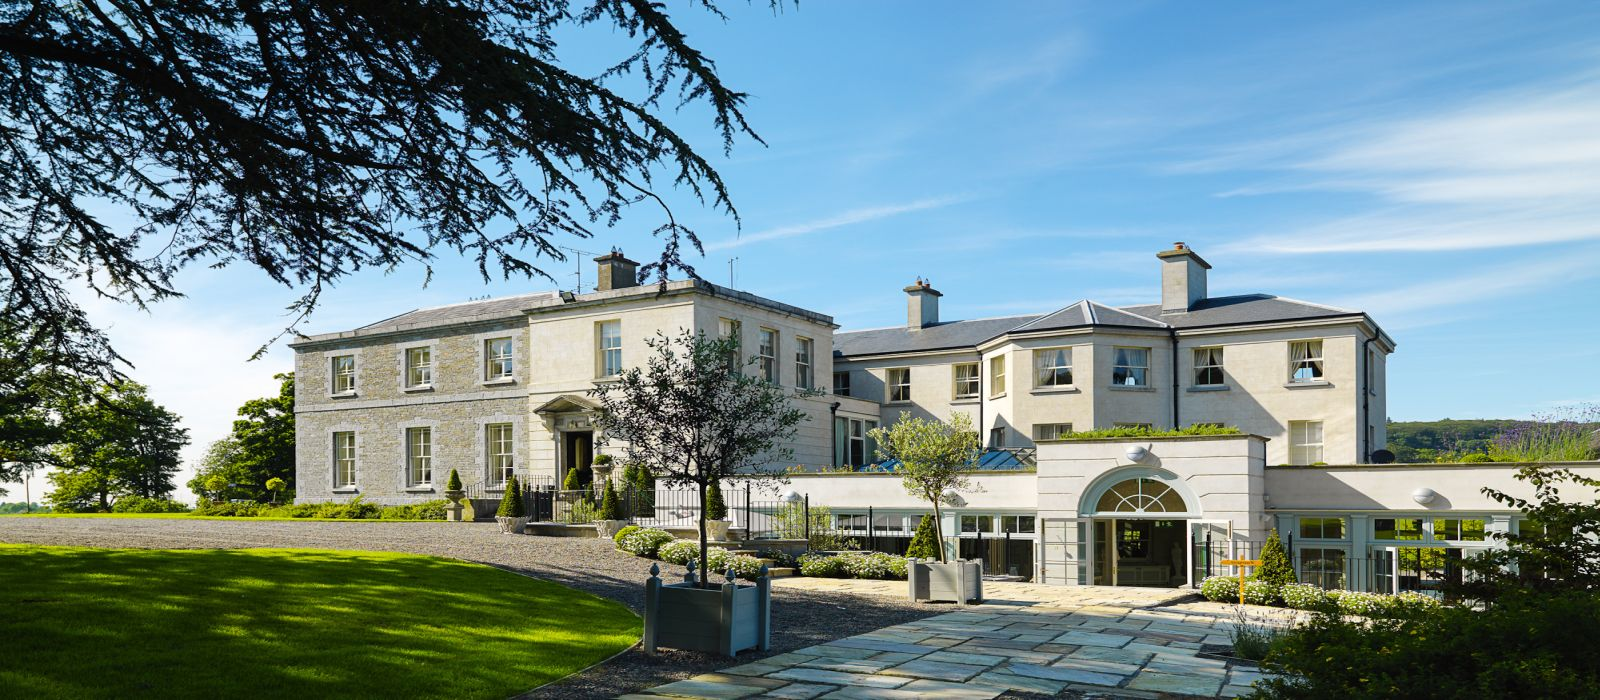 Tankardstown house hotel navan co meath accomodation for Houses images pictures